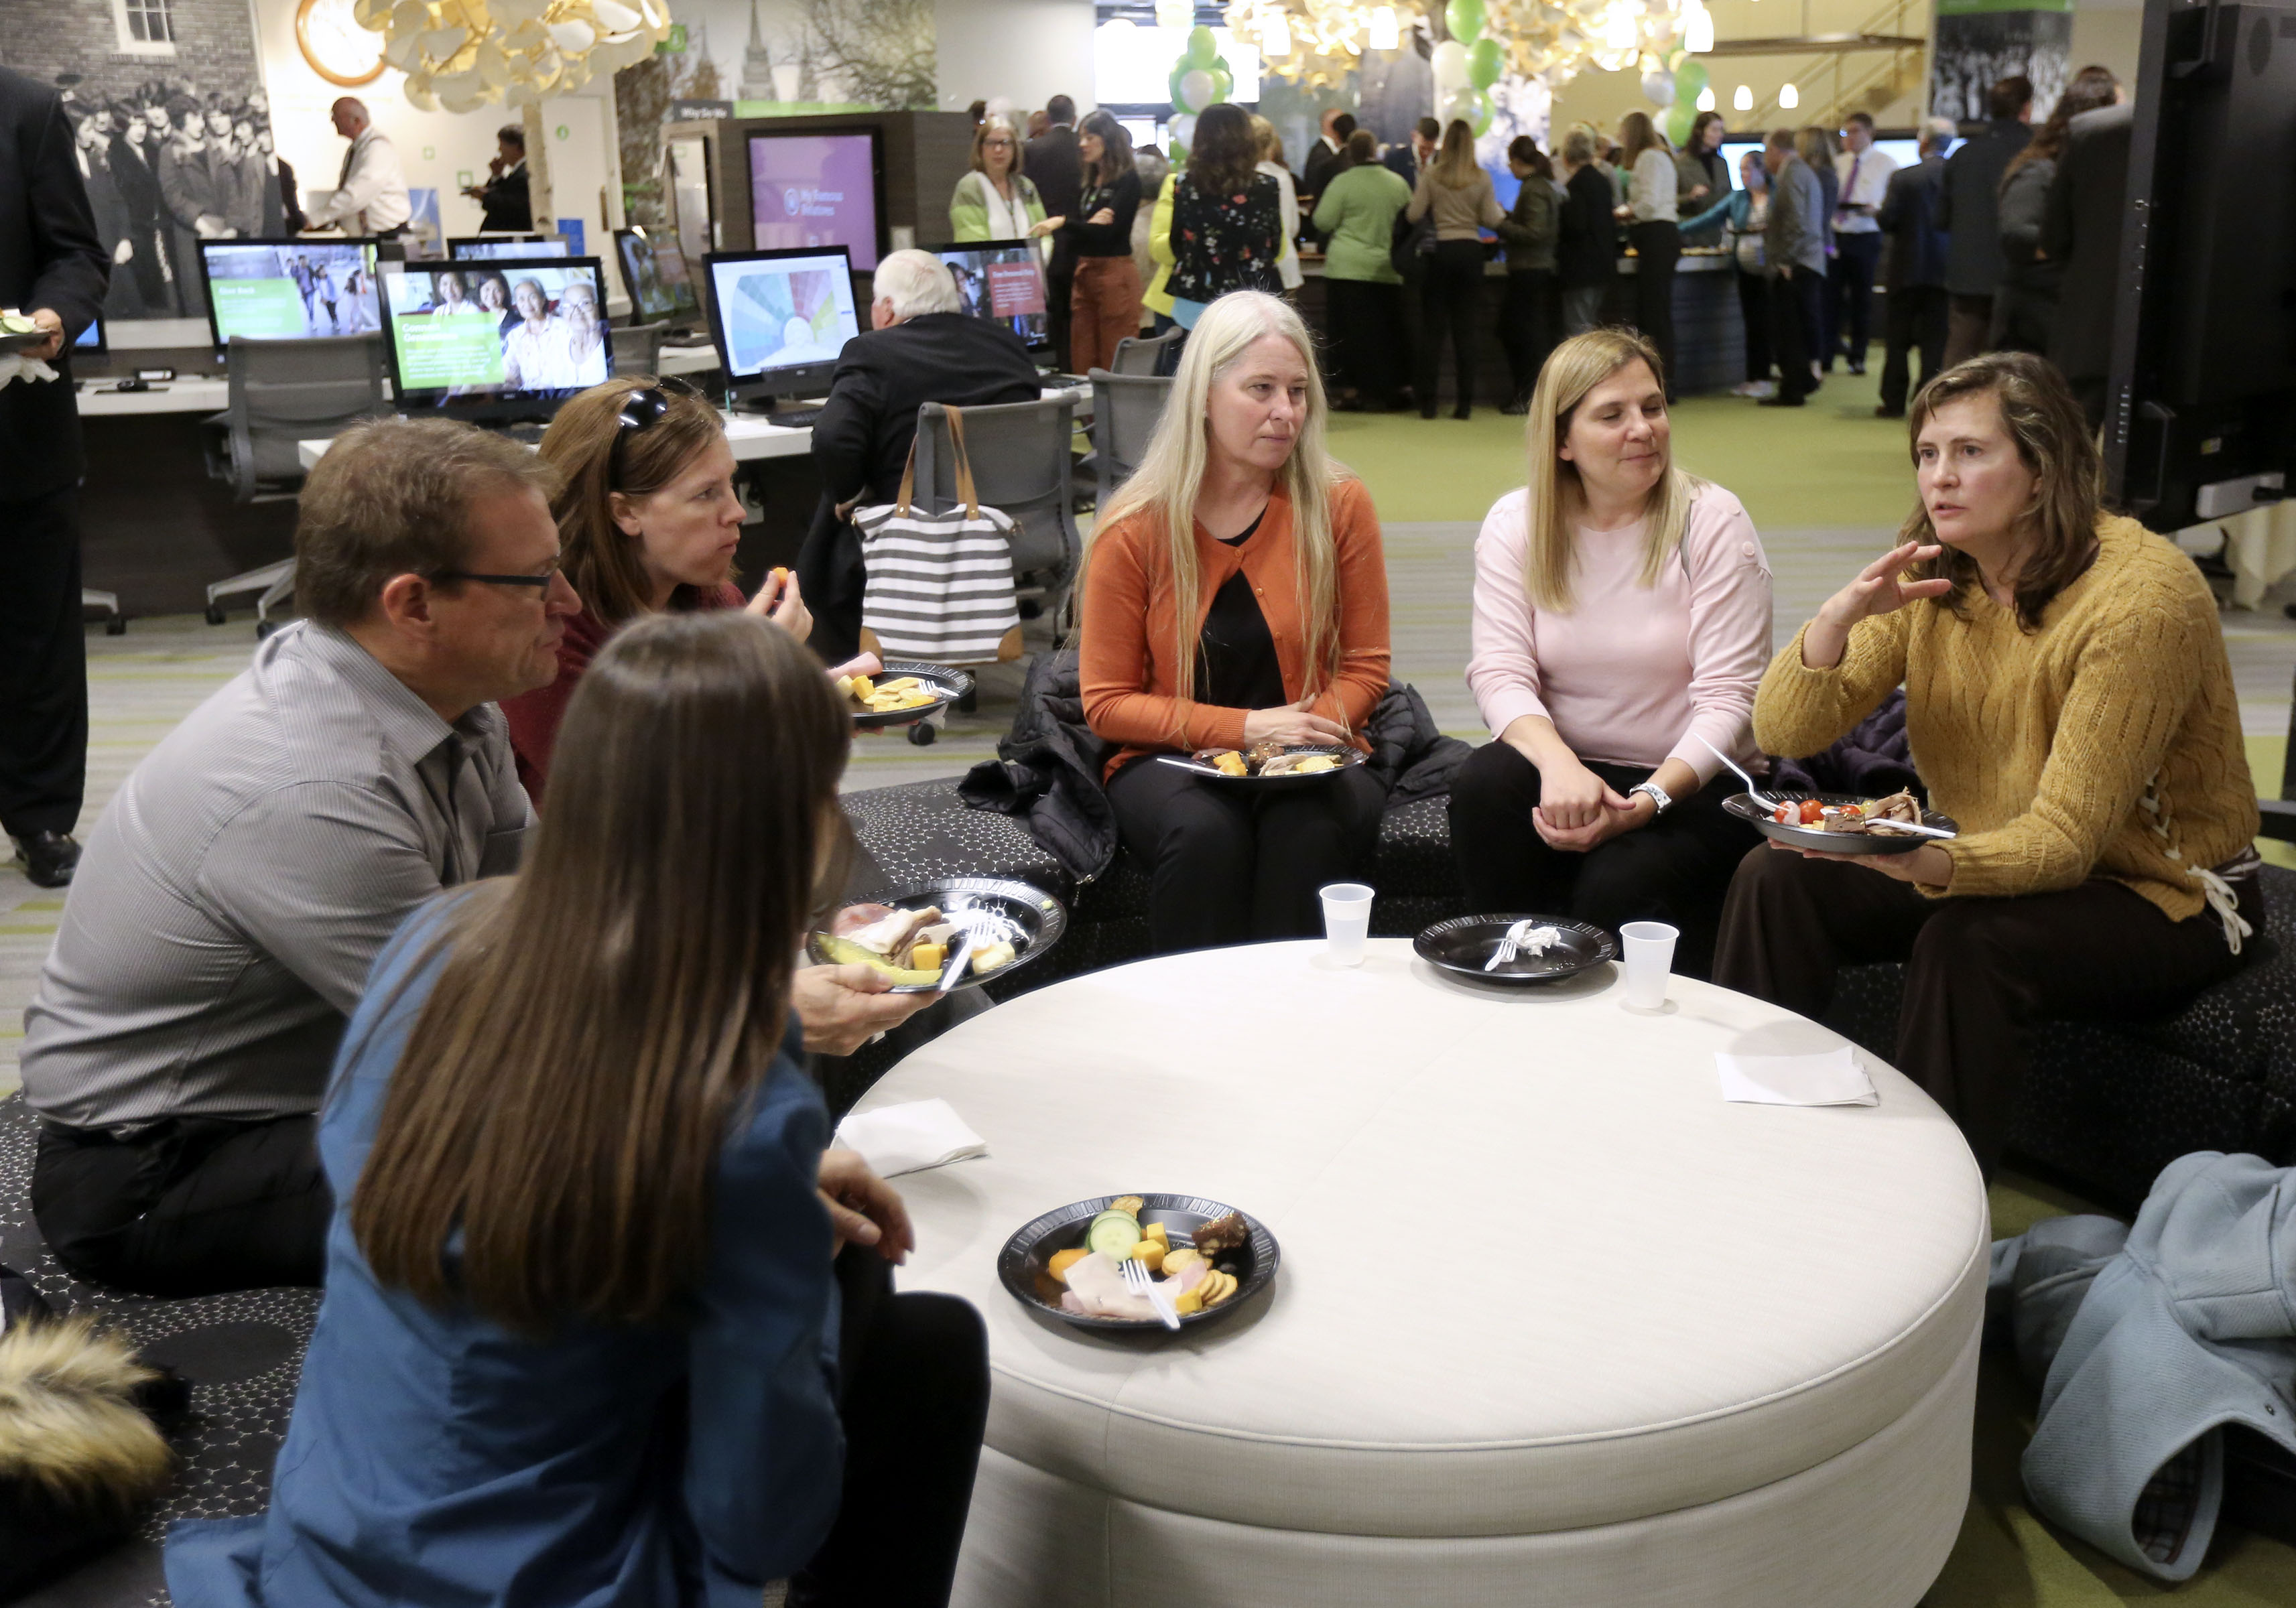 People chat and snack during the FamilySearch 125th anniversary celebration at the Family History Library in Salt Lake City on Wednesday, Nov. 13, 2019.